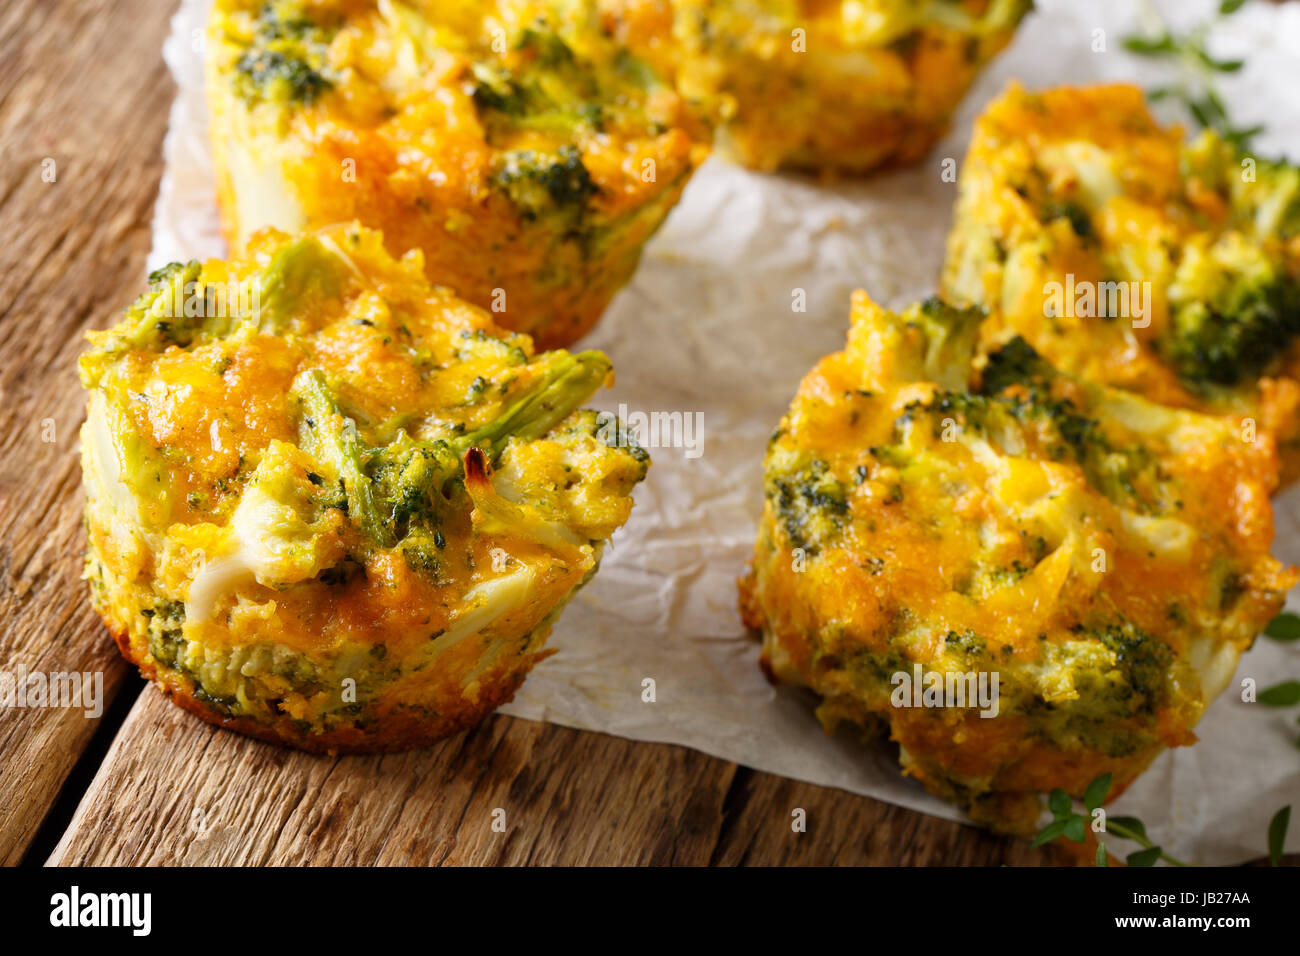 Healthy snack Broccoli muffins with cheddar cheese and thyme close-up on the table. horizontal - Stock Image